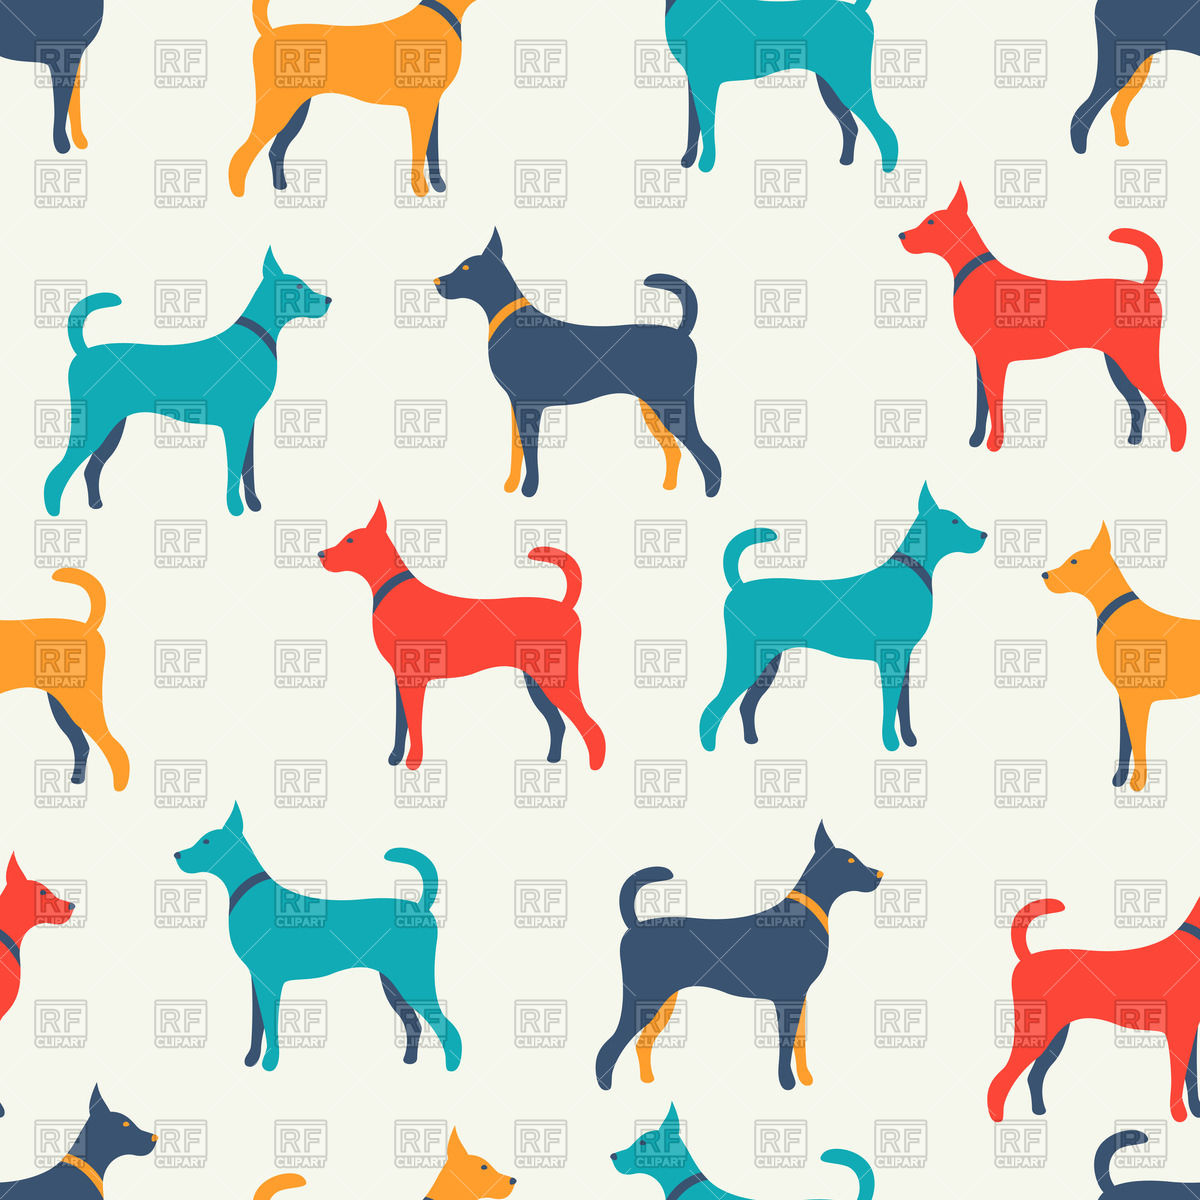 1200x1200 Seamless Background With Colorful Dog Silhouettes Royalty Free